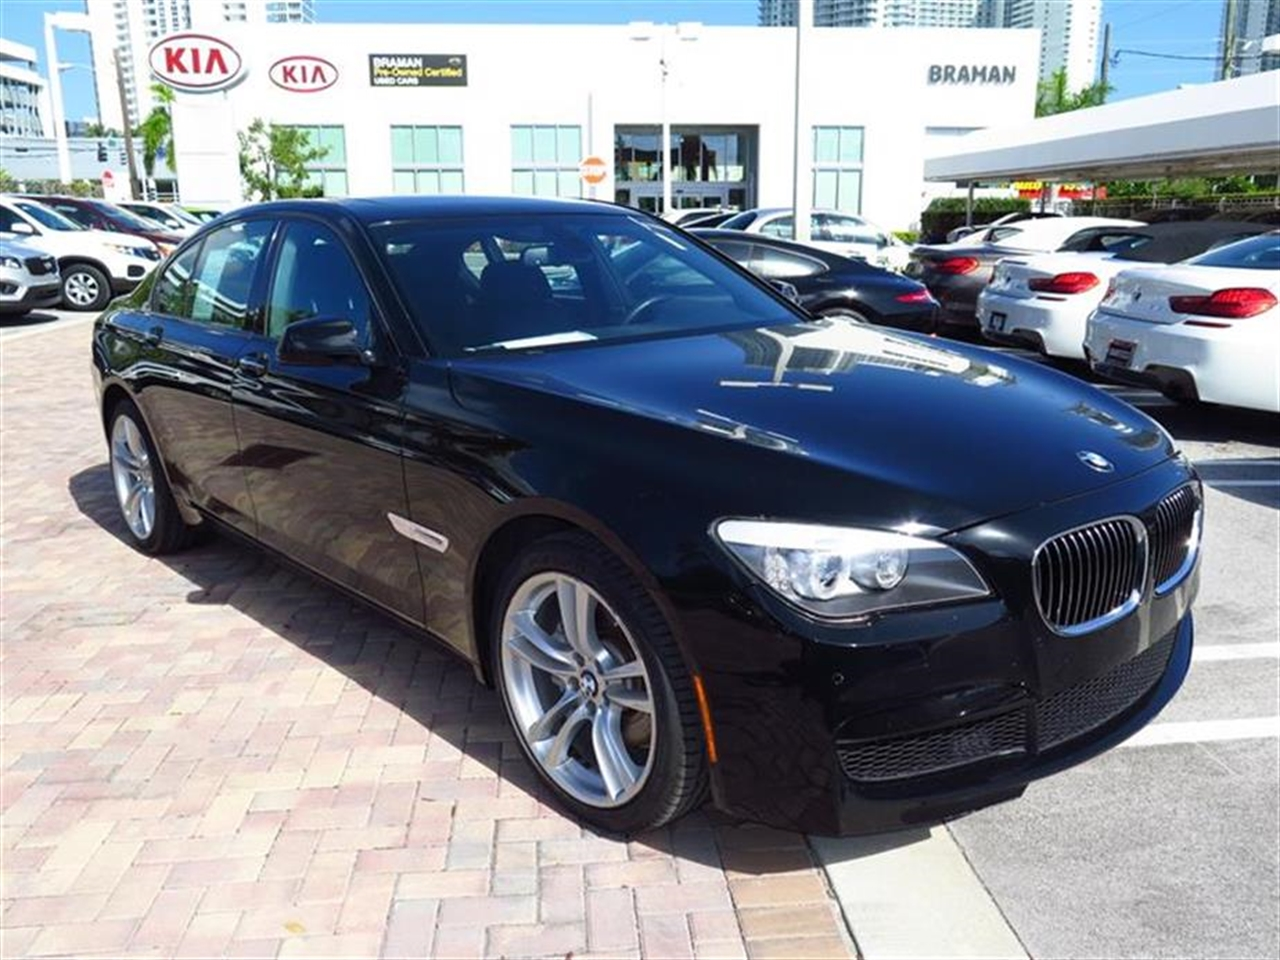 2012 BMW 7 SERIES 4dr Sdn 740i RWD 15898 miles 4-zone automatic climate control -inc draft-free v